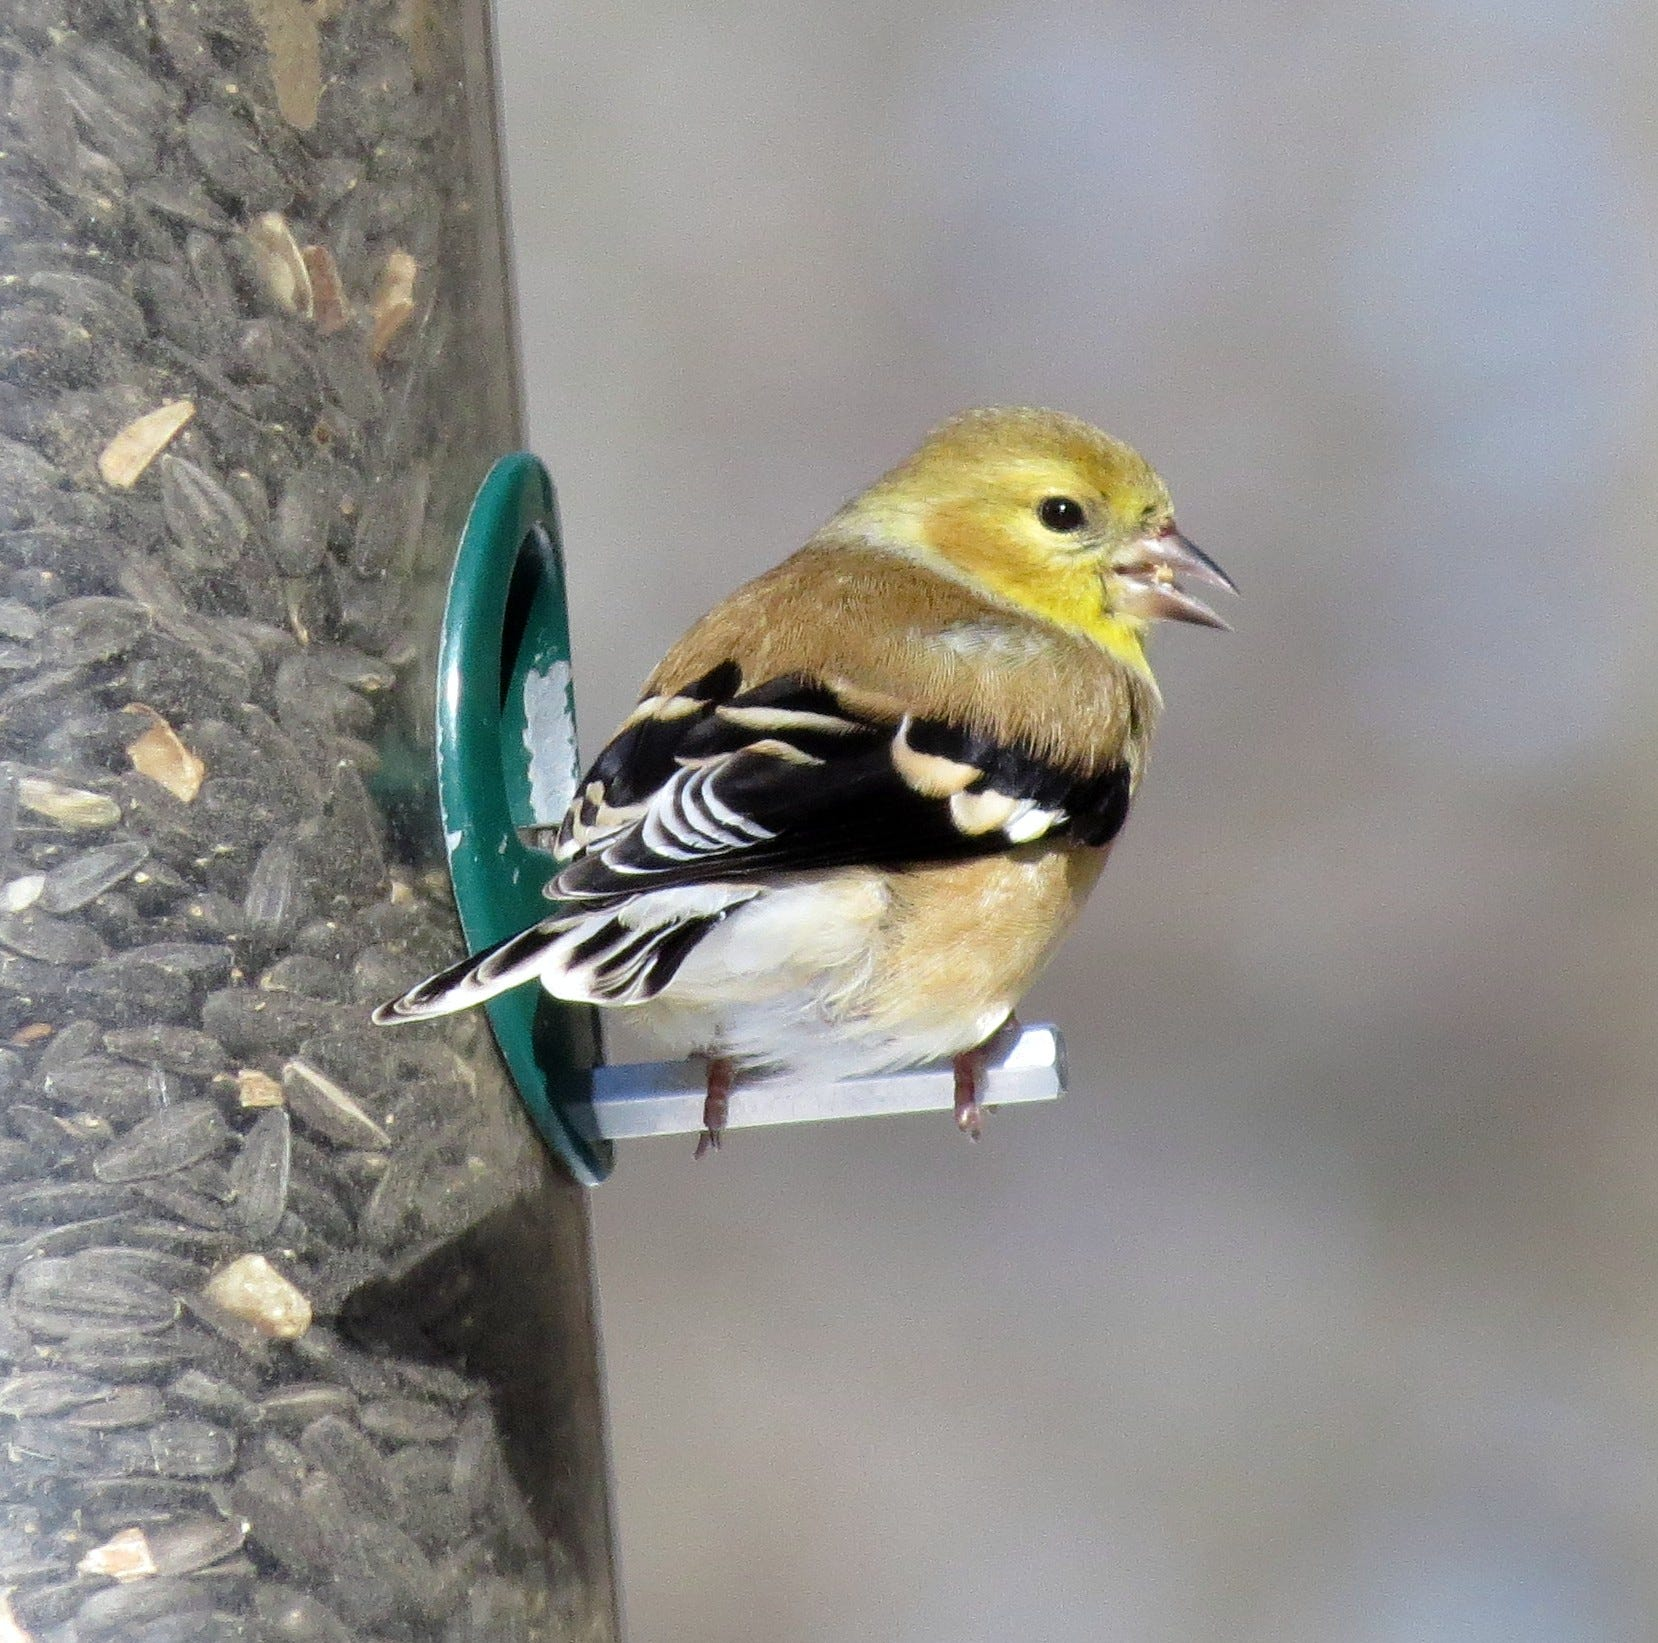 12 ways to help Delaware birds, wildlife survive this winter